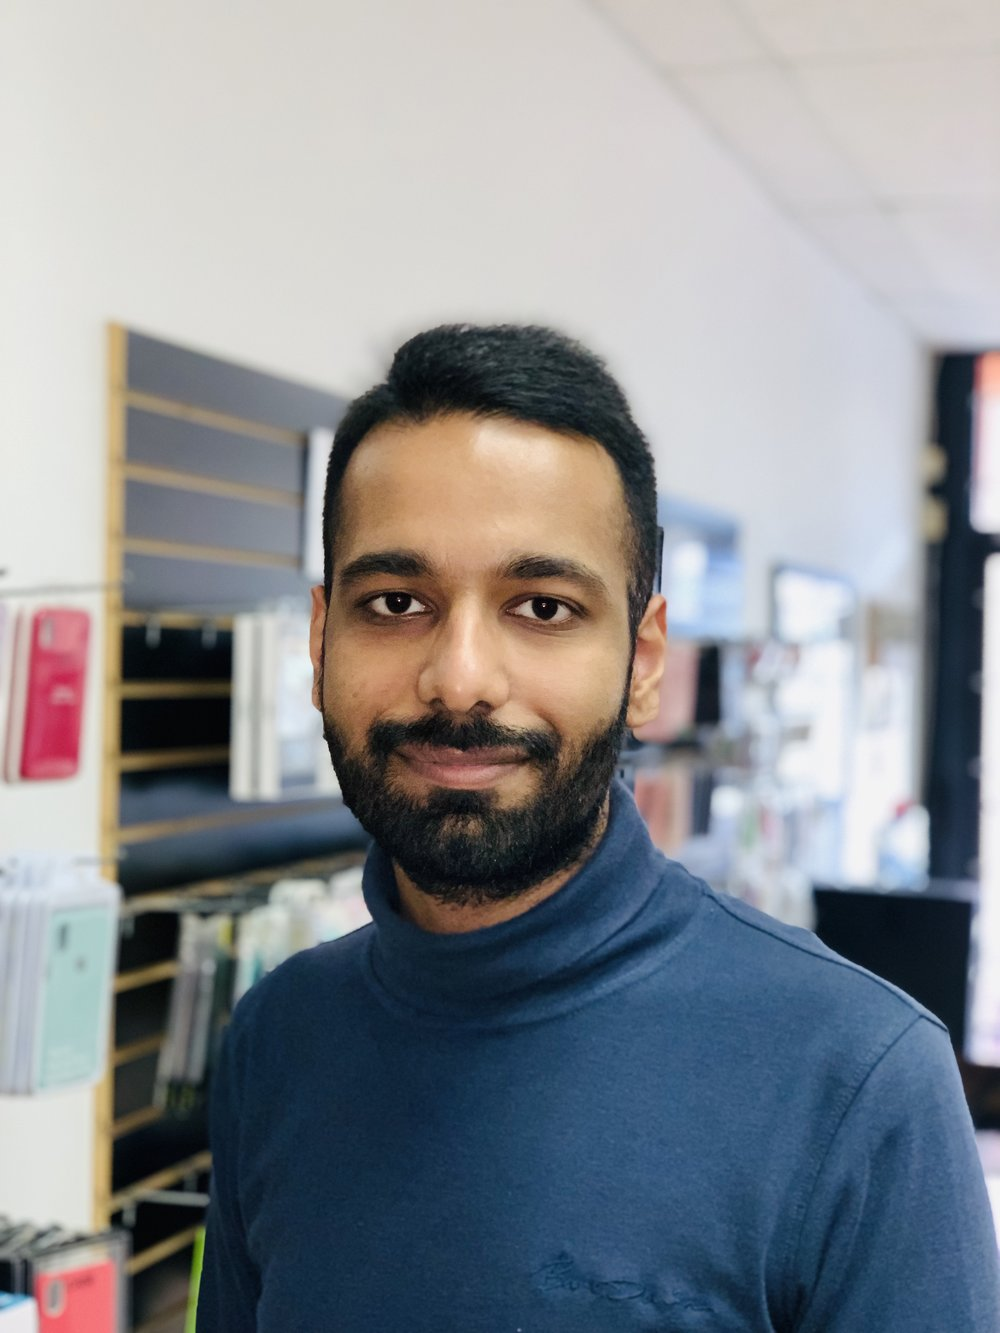 Neil Thapar - Neil is a new addition to the All About Tech team. His welcoming smile and upbeat attitude are what customers gravitate to. Neil has both him iOS and Mac certification and has years of experience fixing both software and hardware problems on Macs and iOS devices.